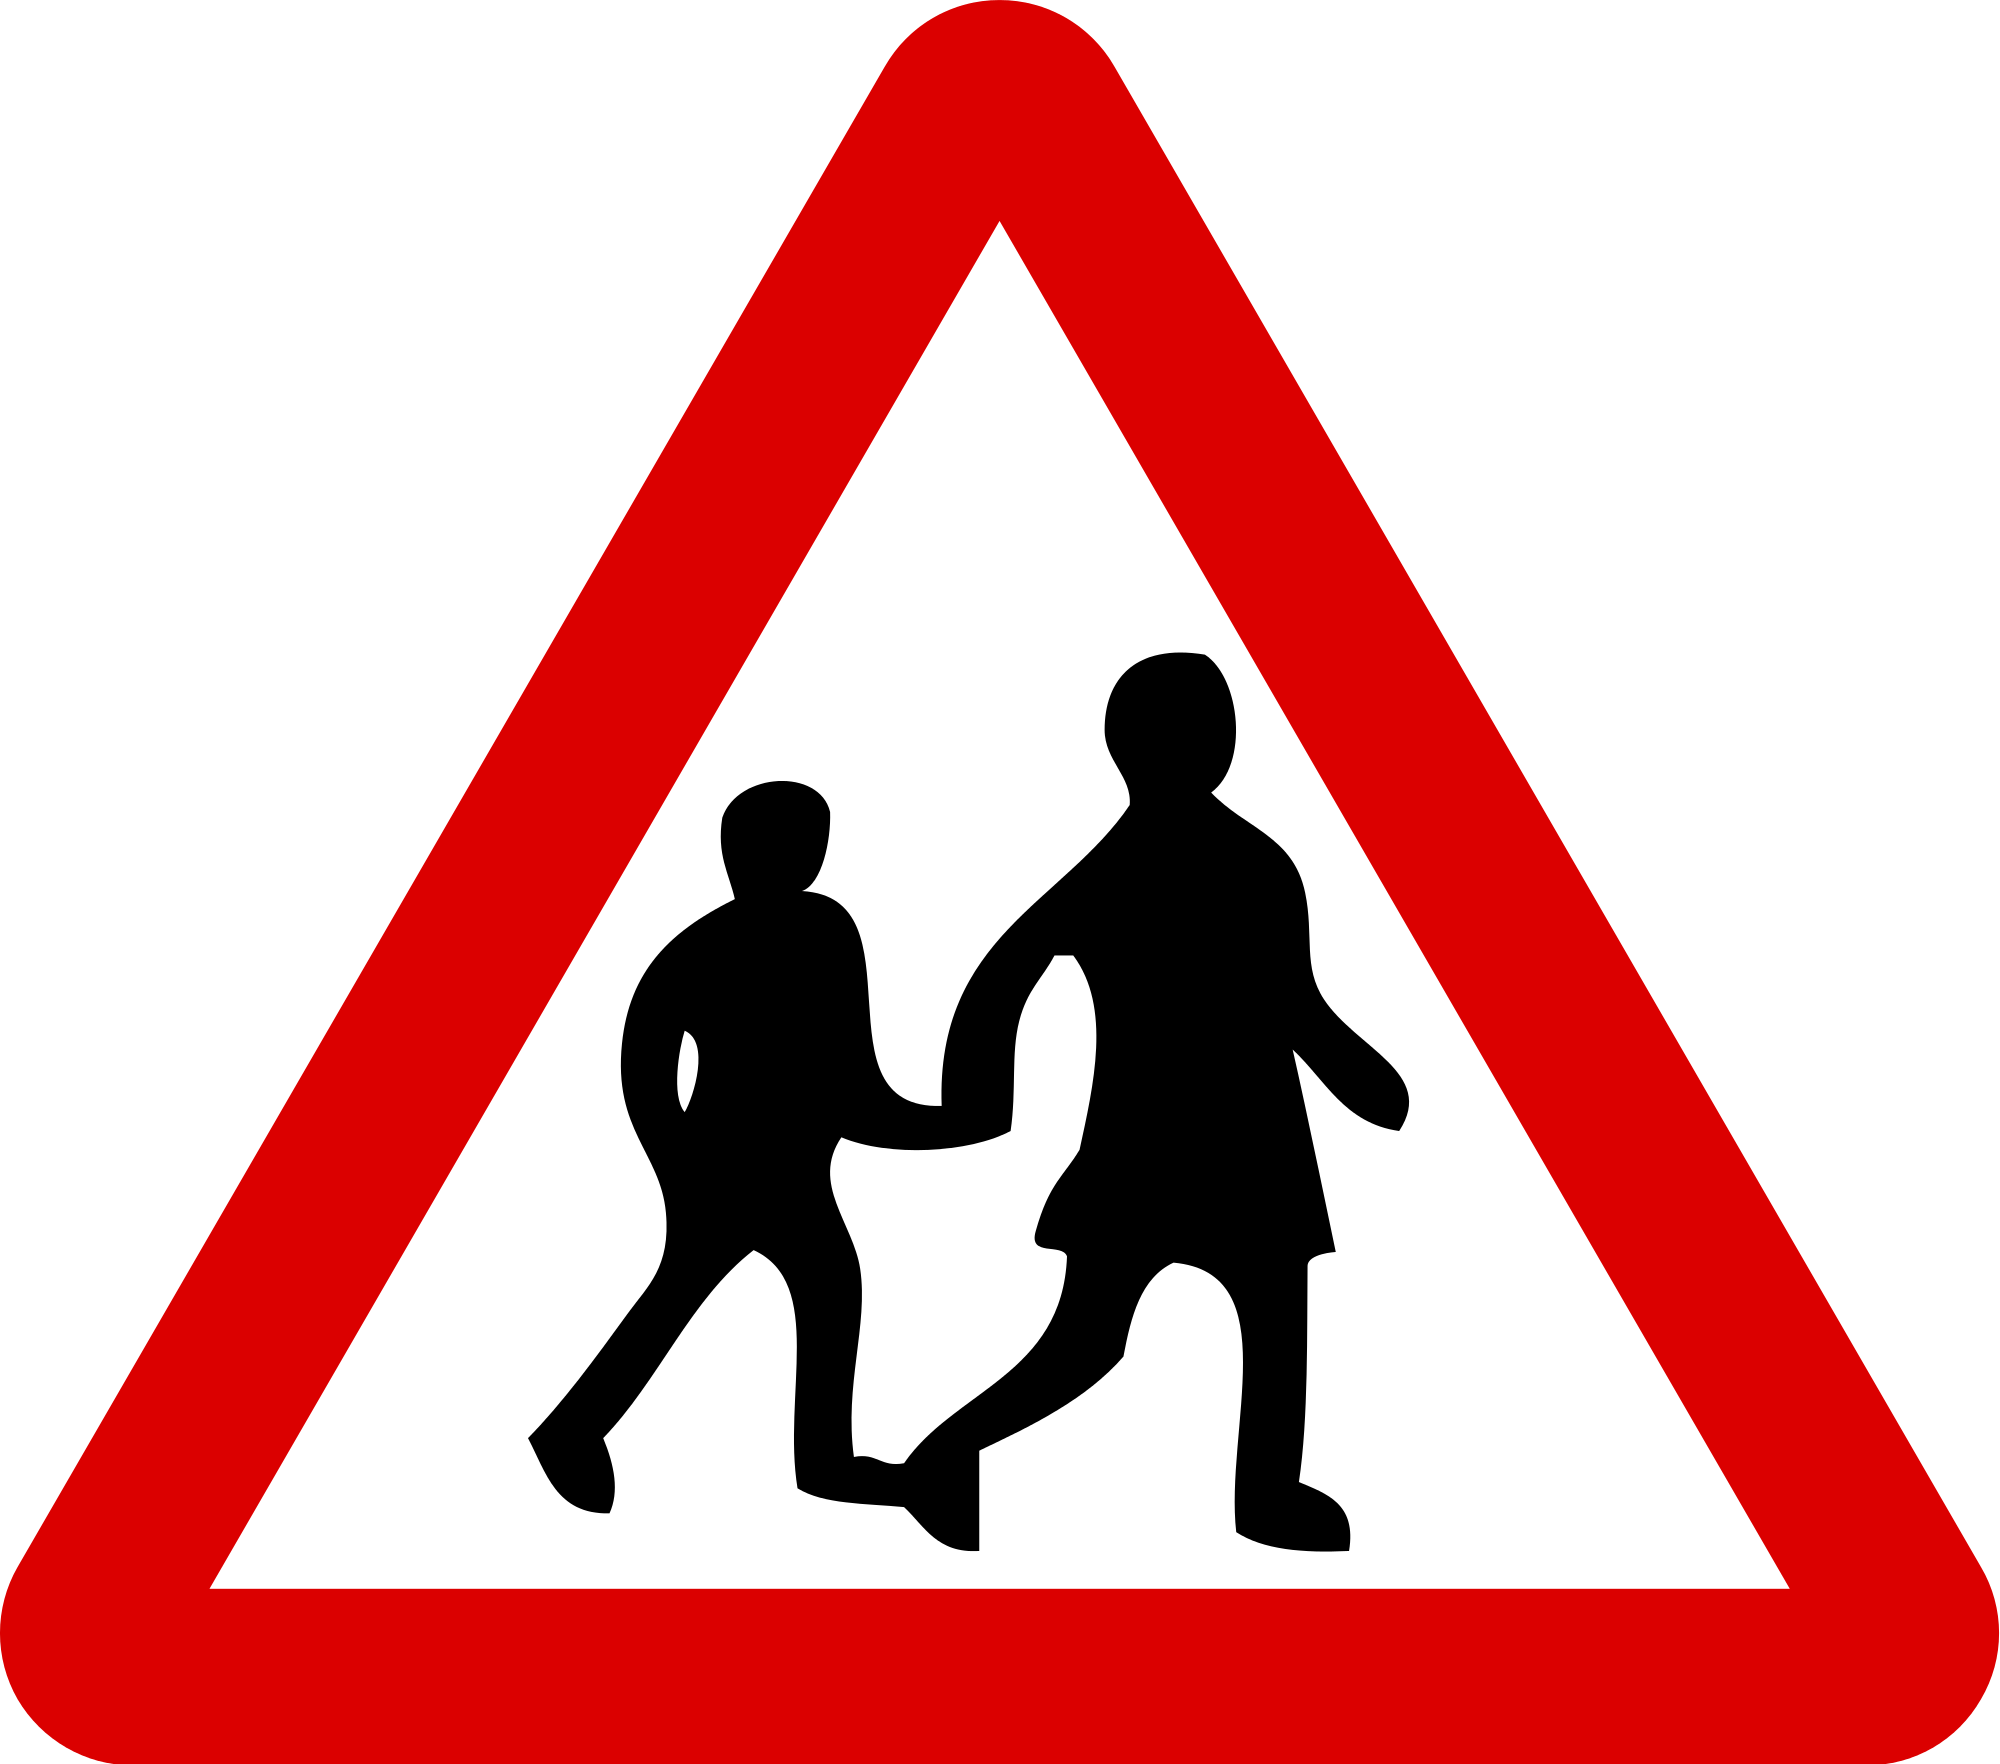 Clipart road illustration. Sign silhouette at getdrawings